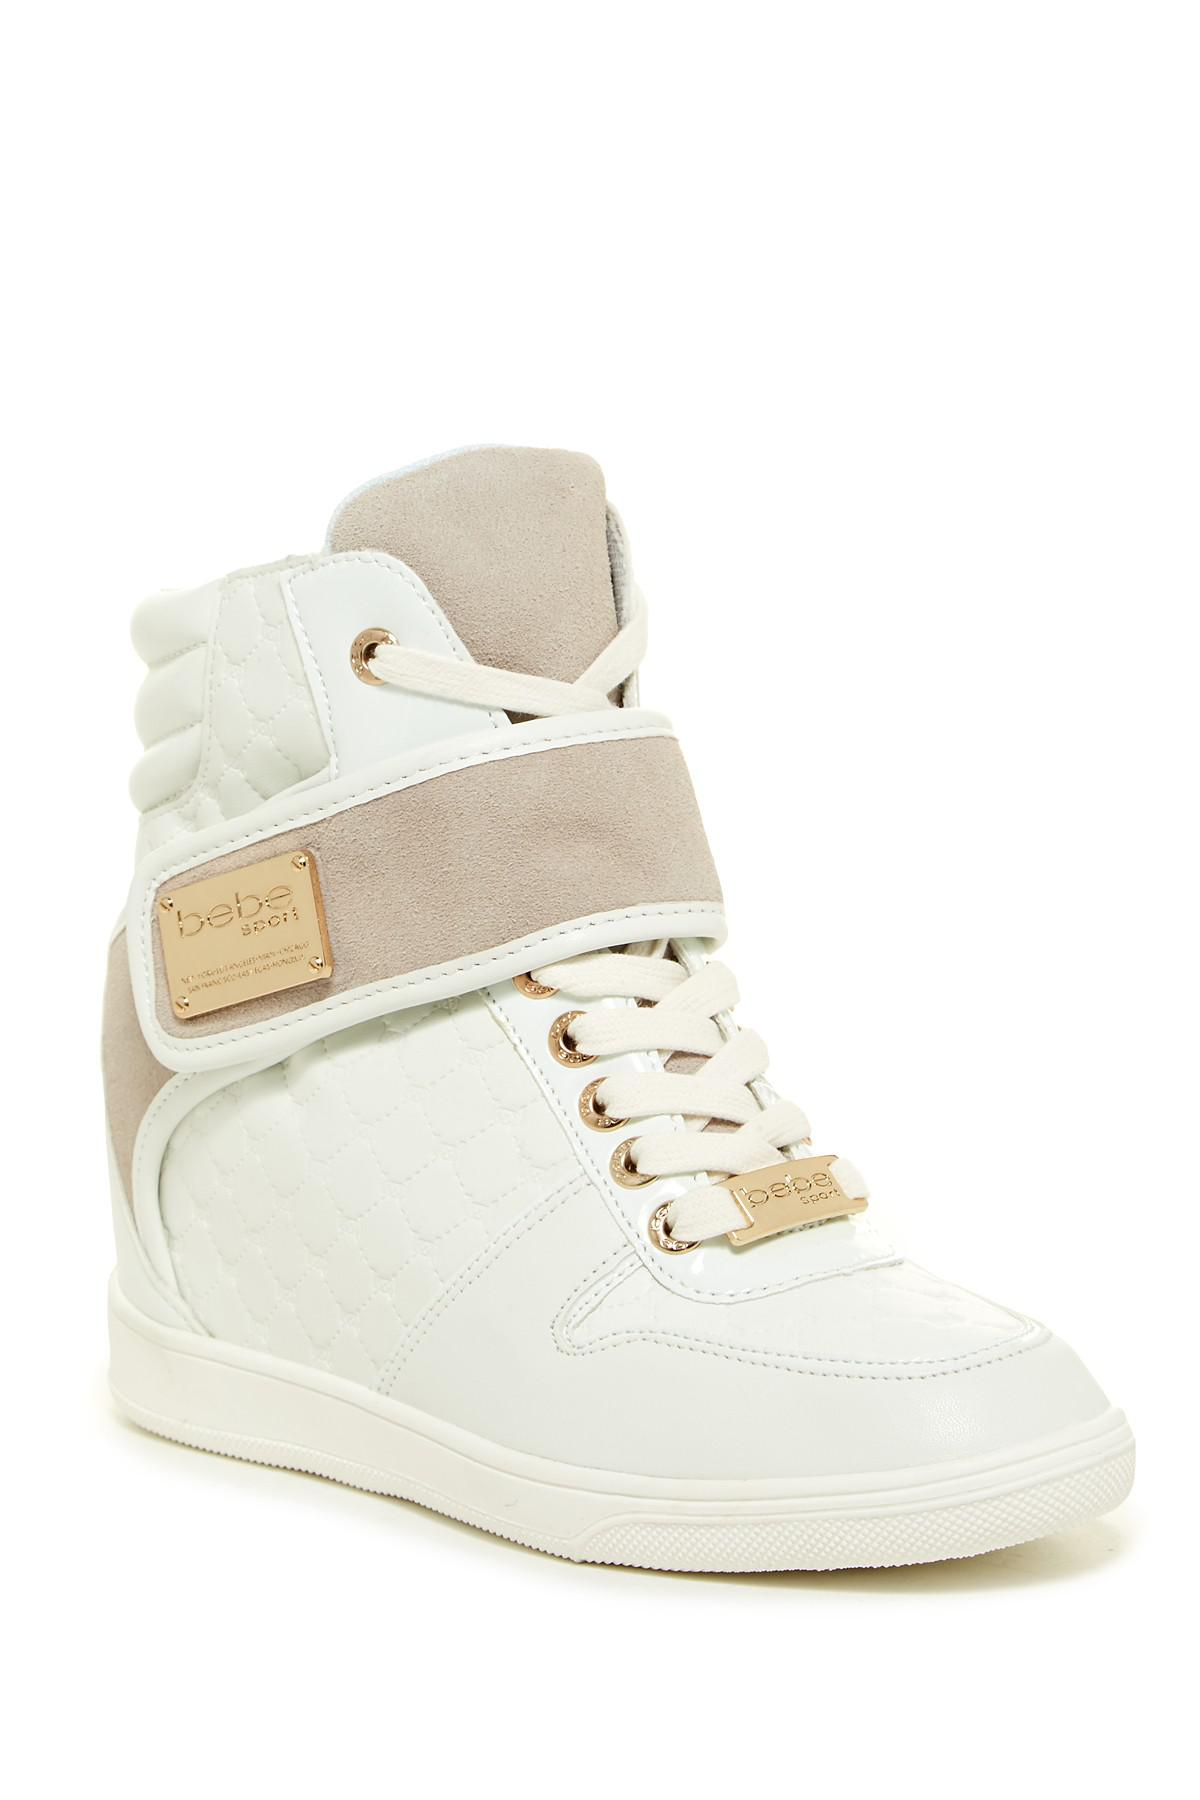 251557f8c6a6 Gallery. Previously sold at  Nordstrom Rack · Women s Wedge Sneakers ...